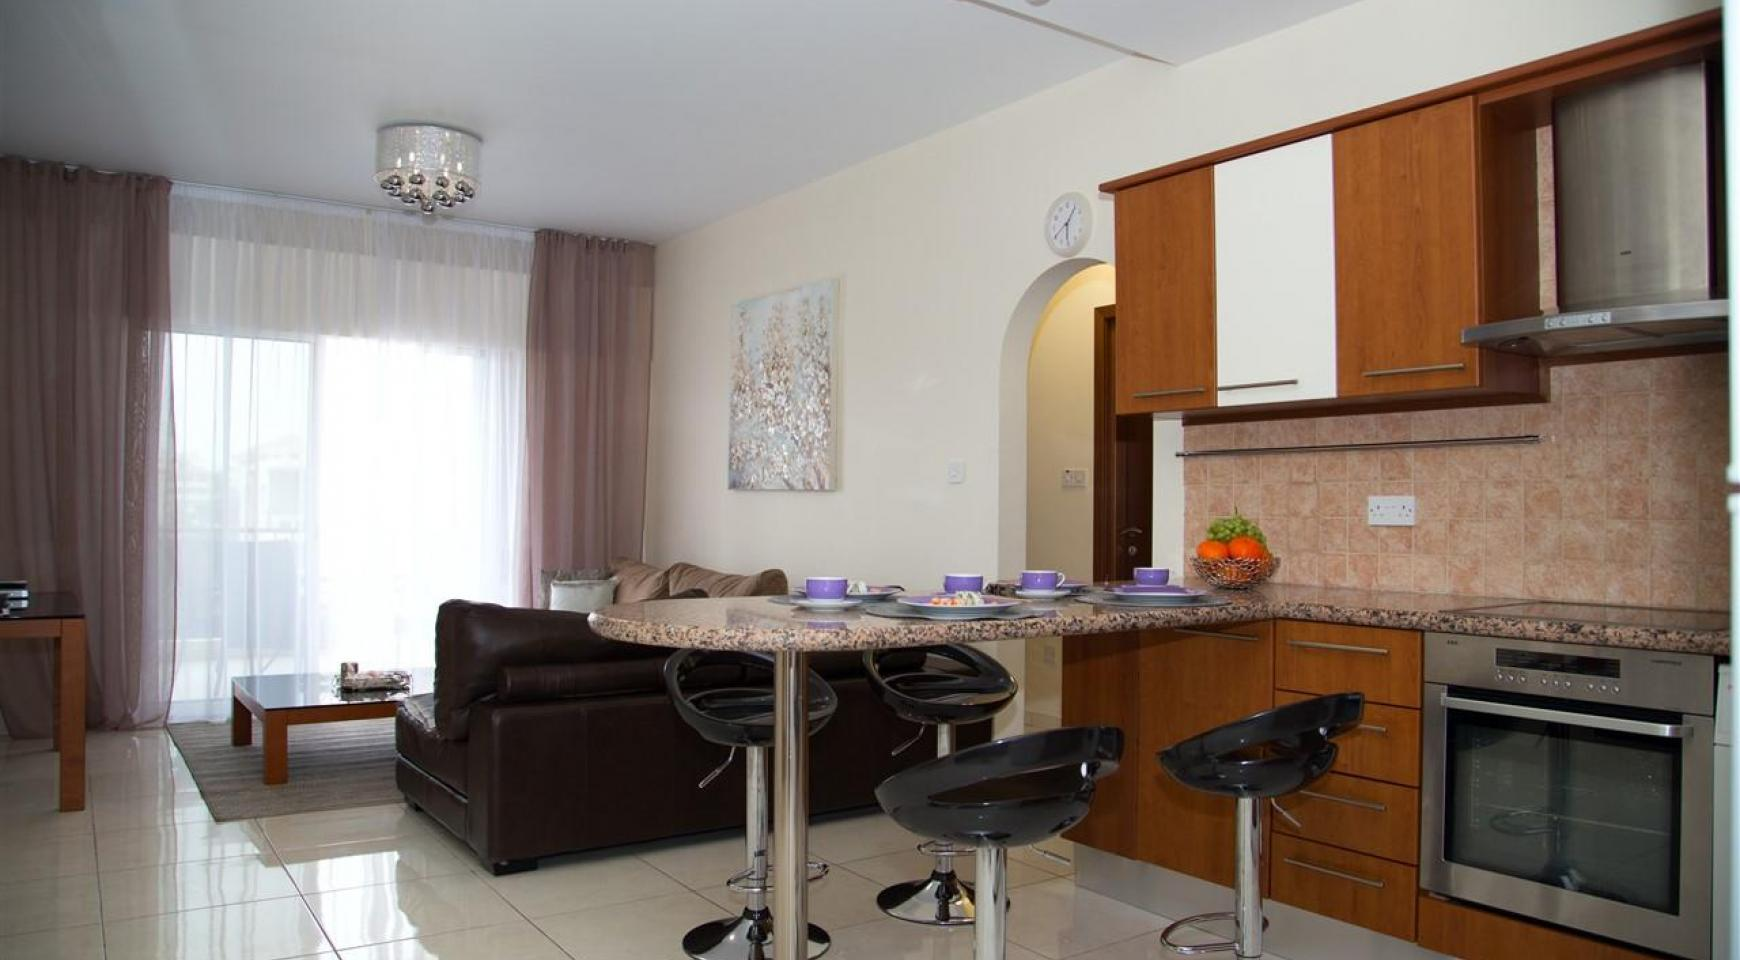 Luxury 2 Bedroom Apartment Mesogios Iris 304 in the Tourist area near the Beach - 7